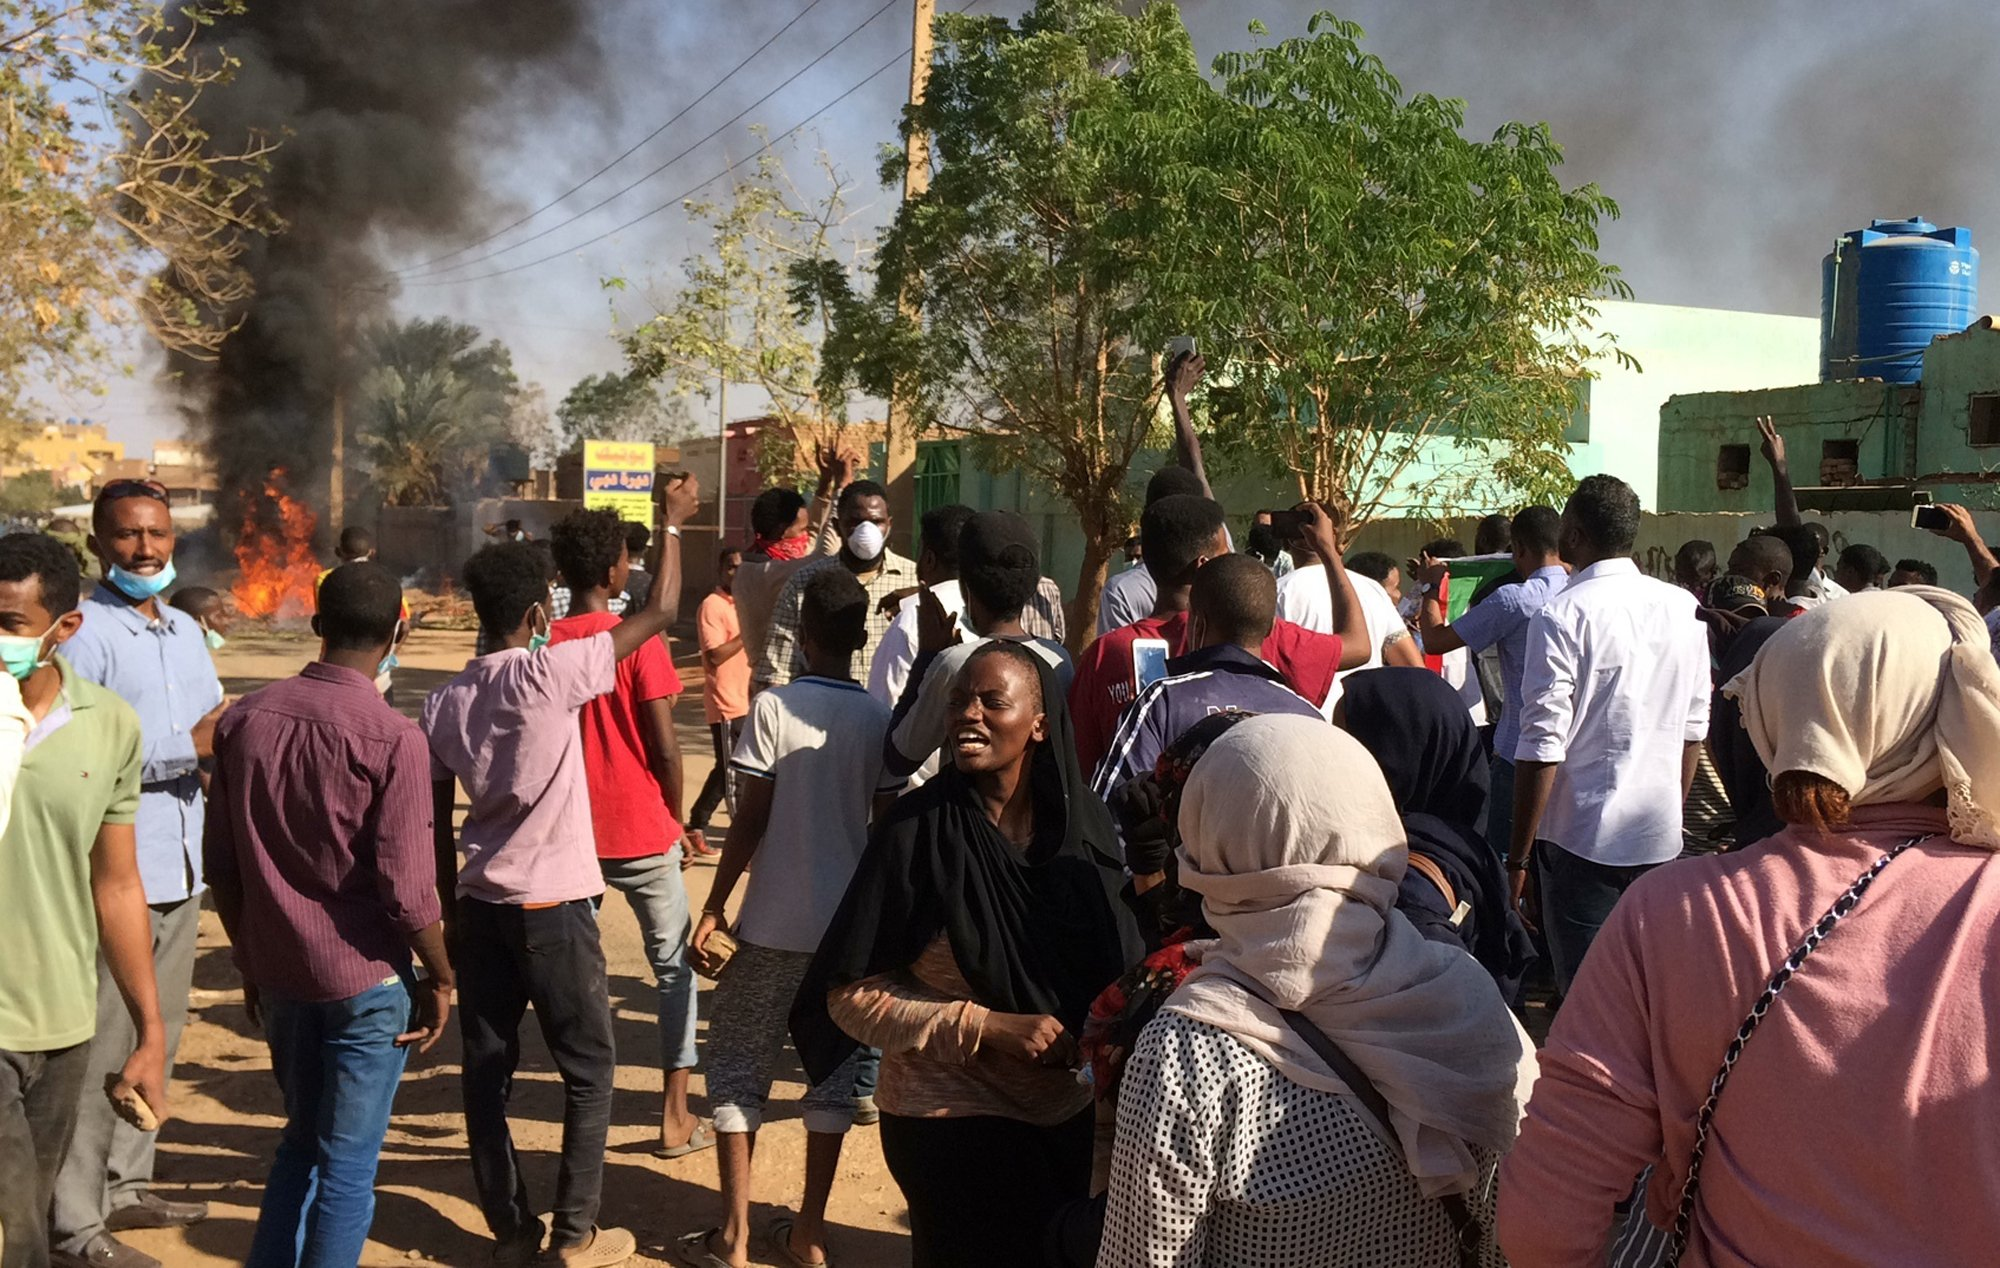 Sudanese president issues 5 emergency orders amid growing protests